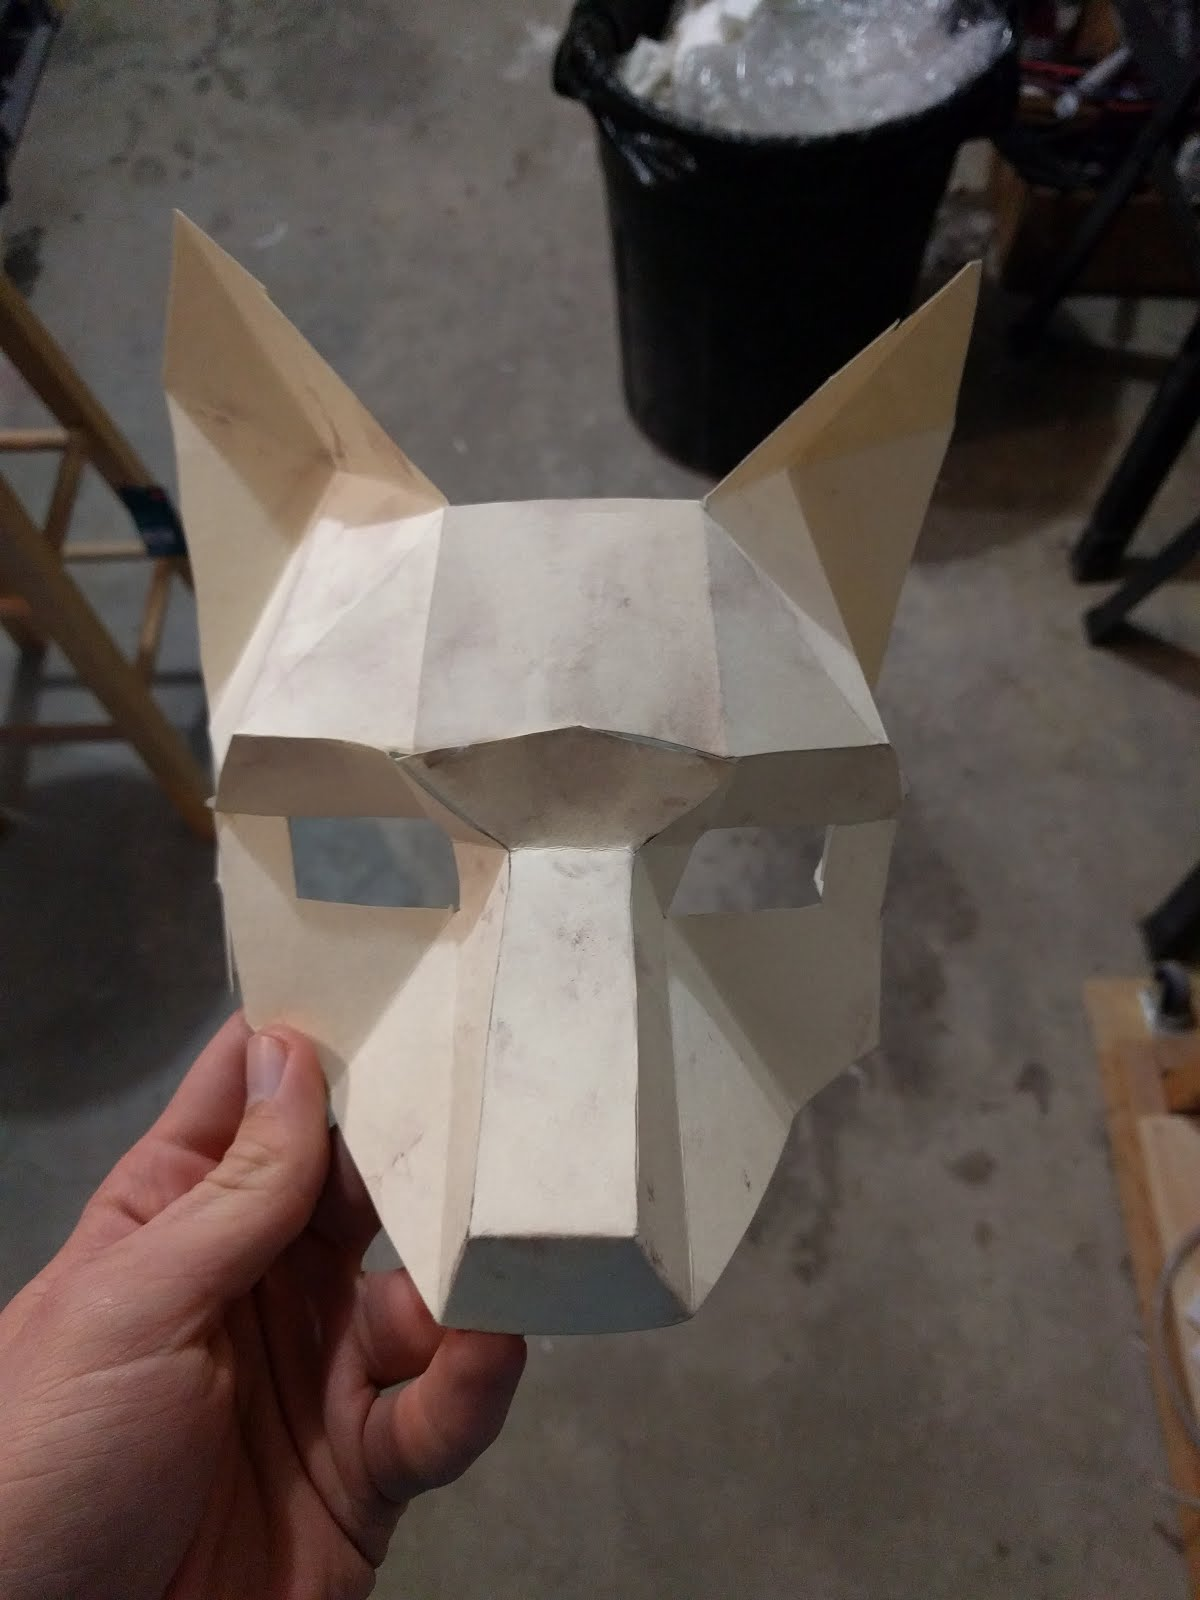 I Took The Mask Template And Glued It To 22 Gauge Copper Sheet With Spray Adhesive